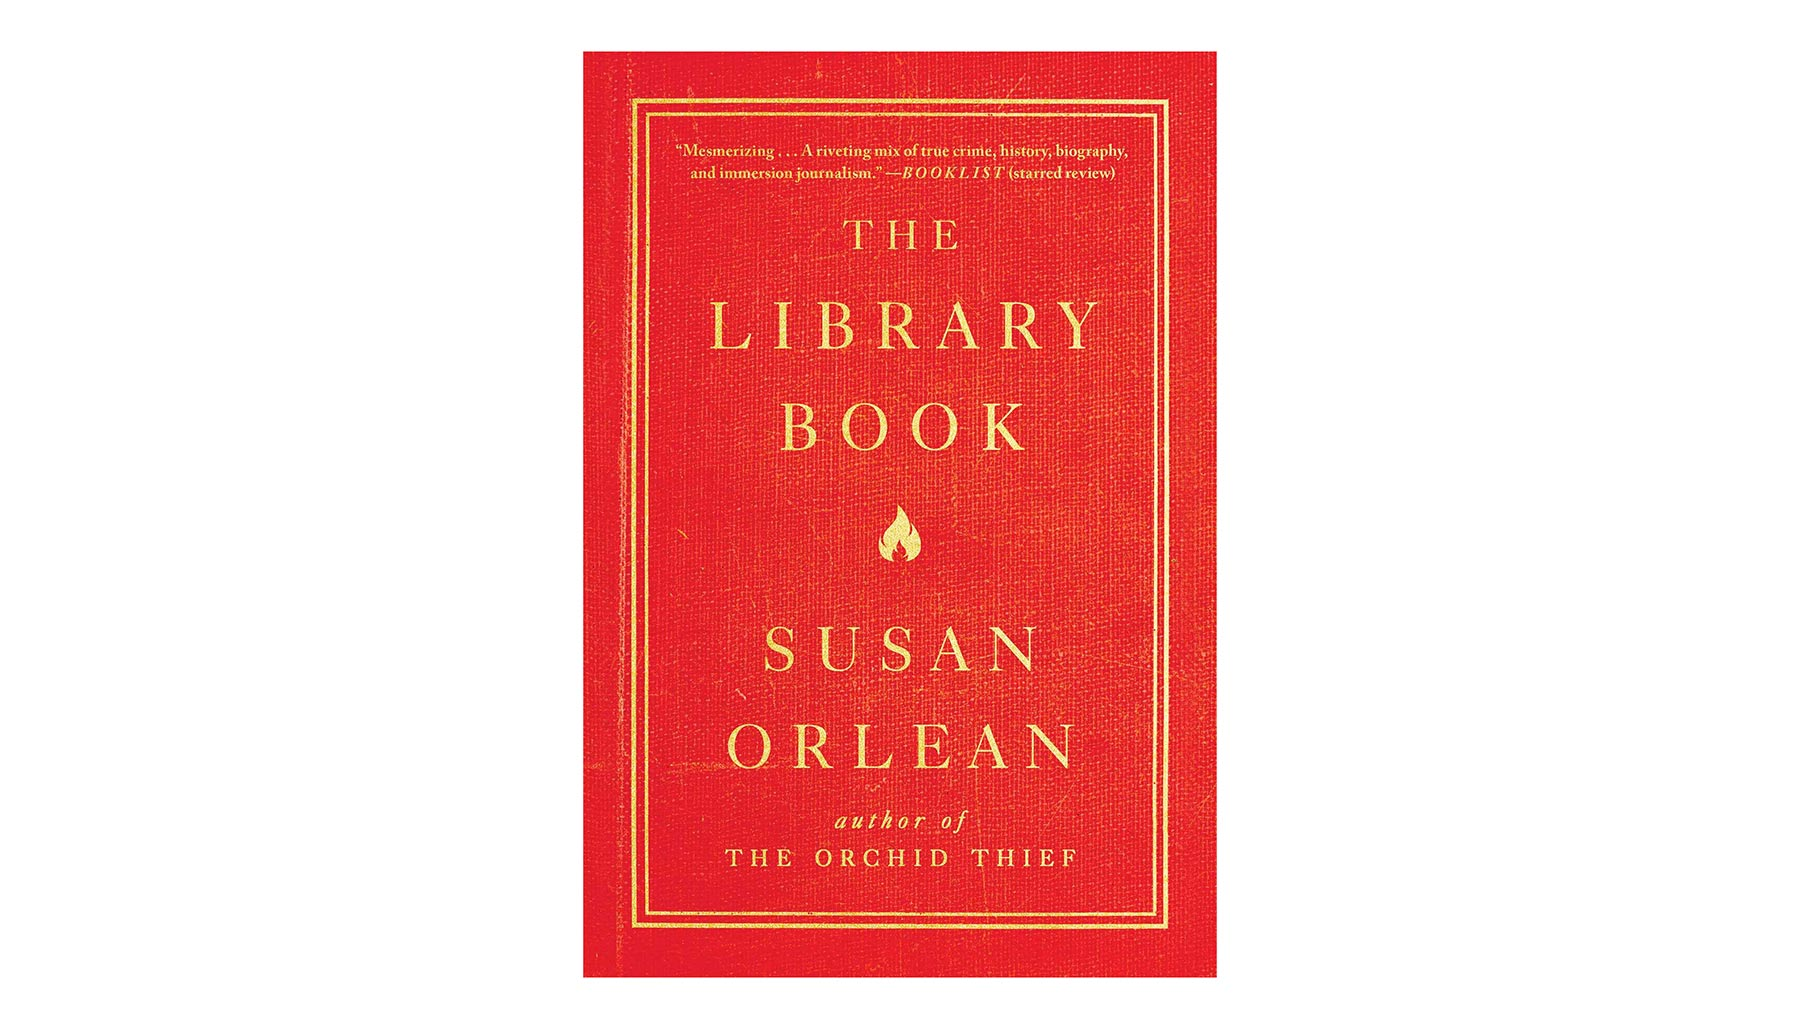 The Library Book, by Susan Orlean